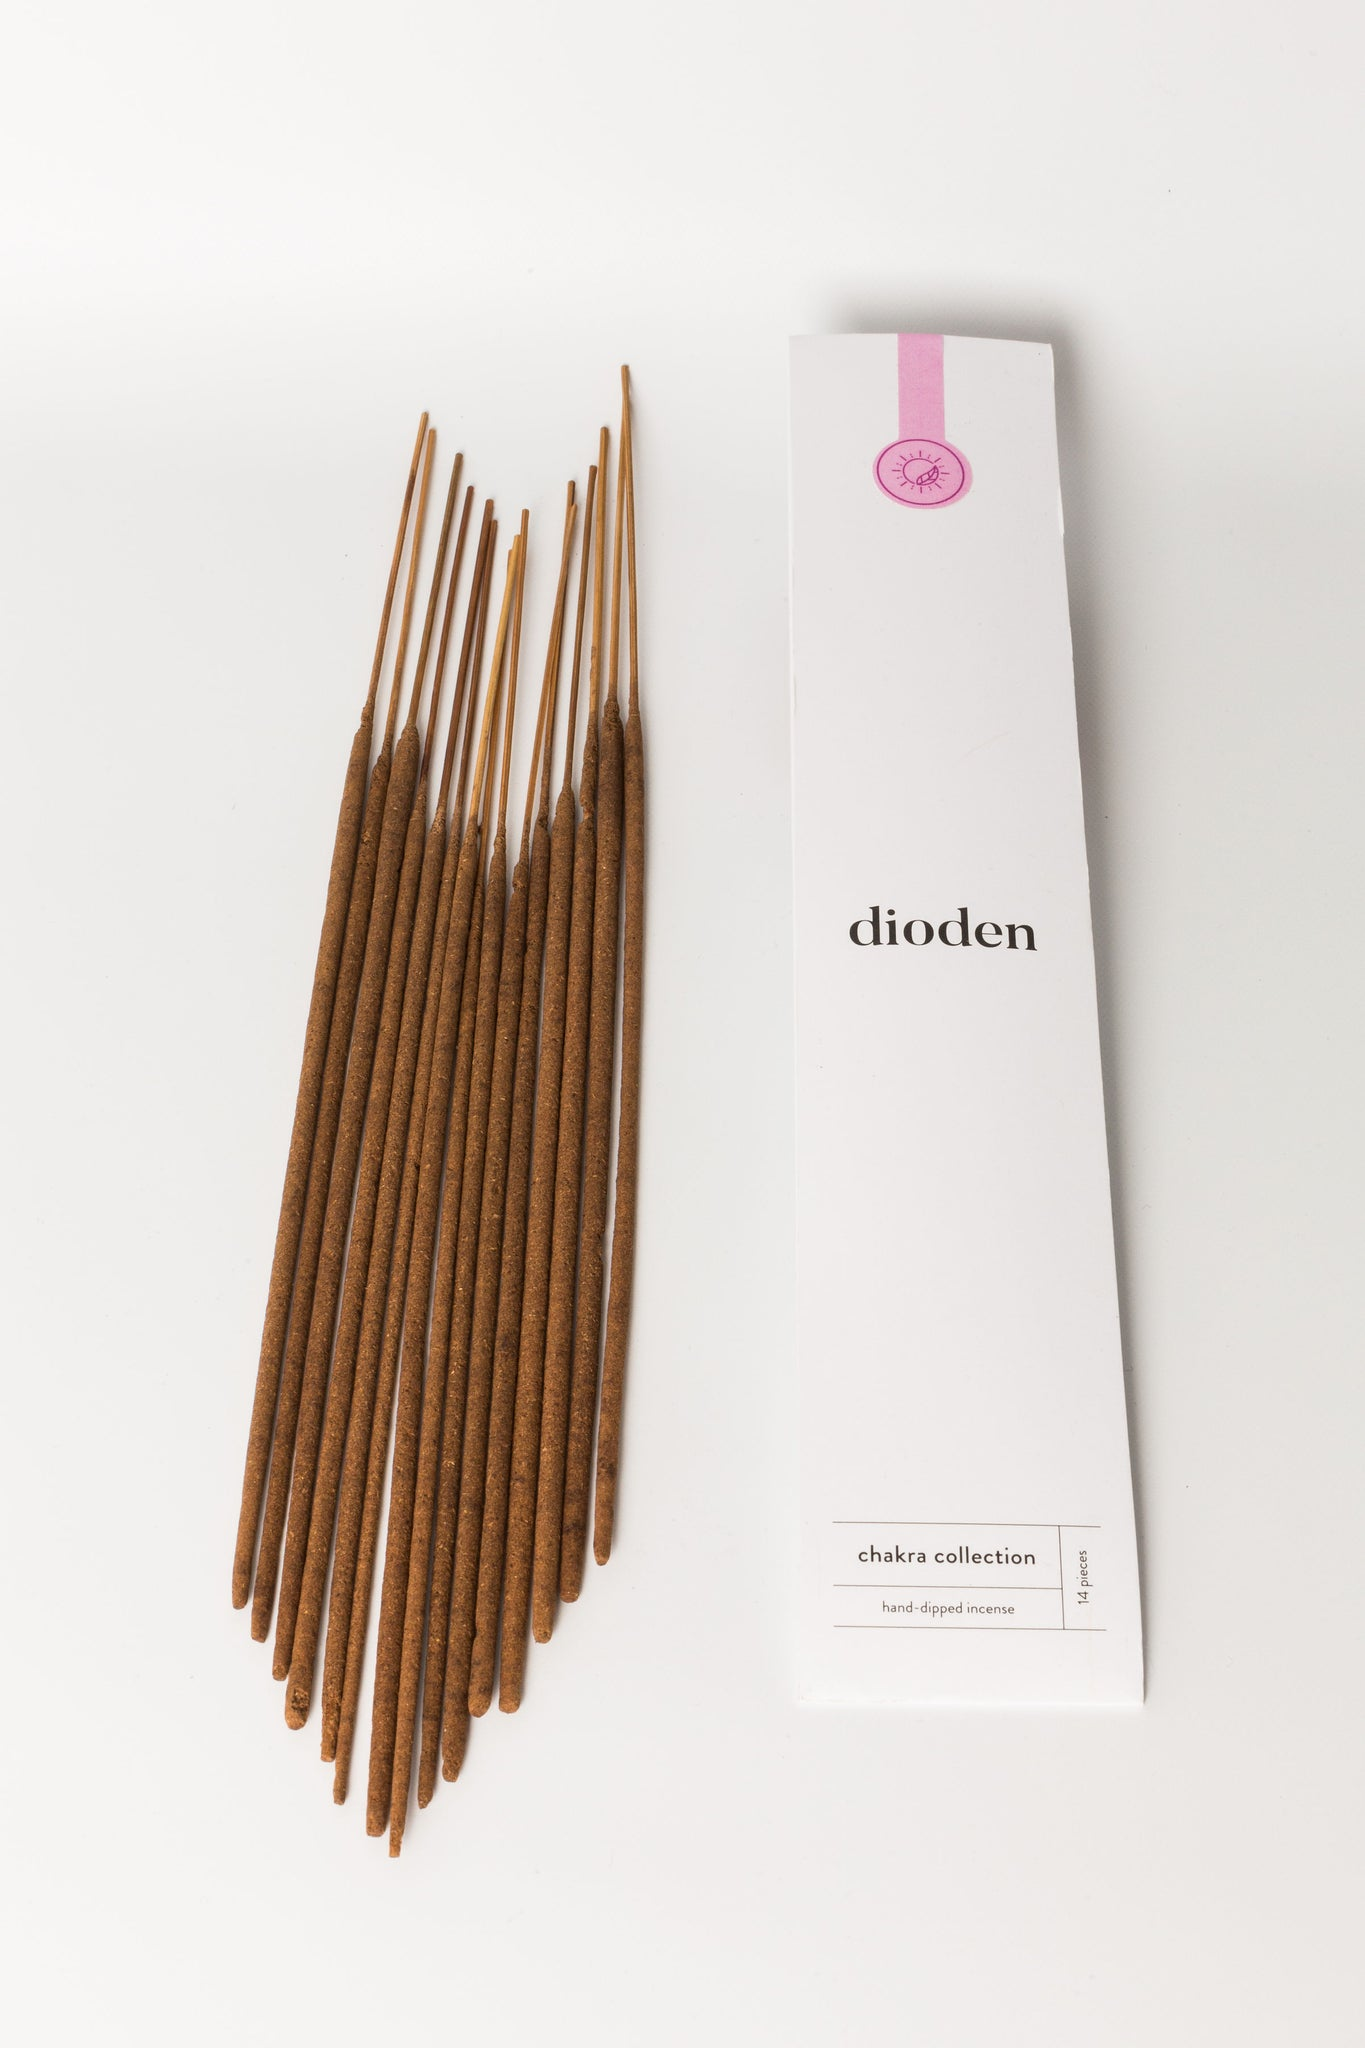 crown chakra incense